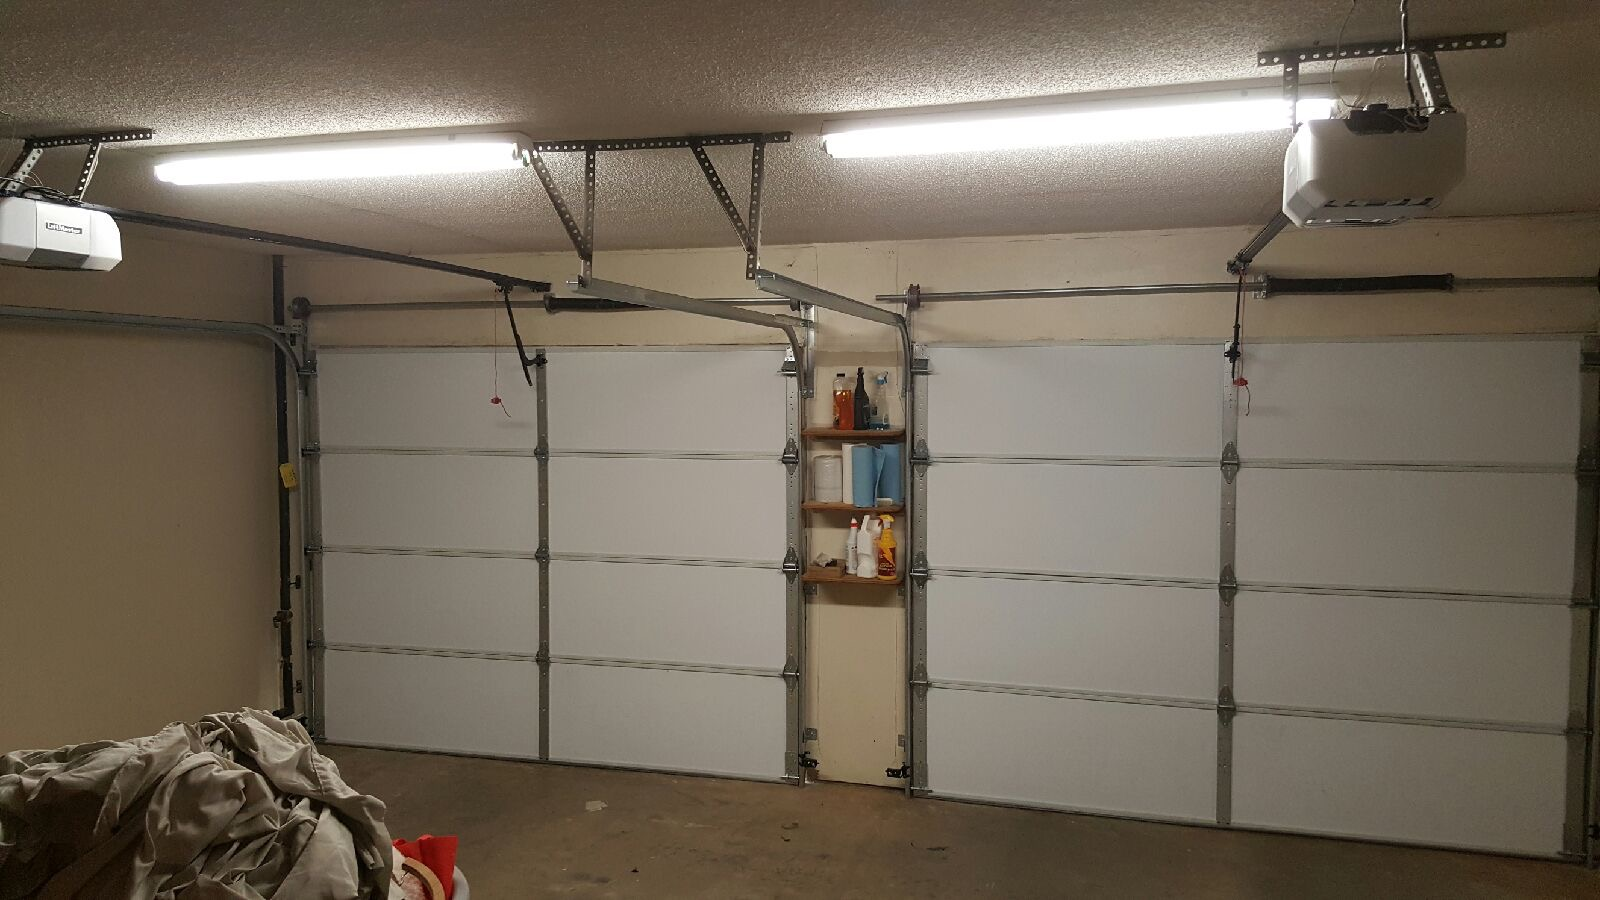 Commercial garage door repair king of prussia